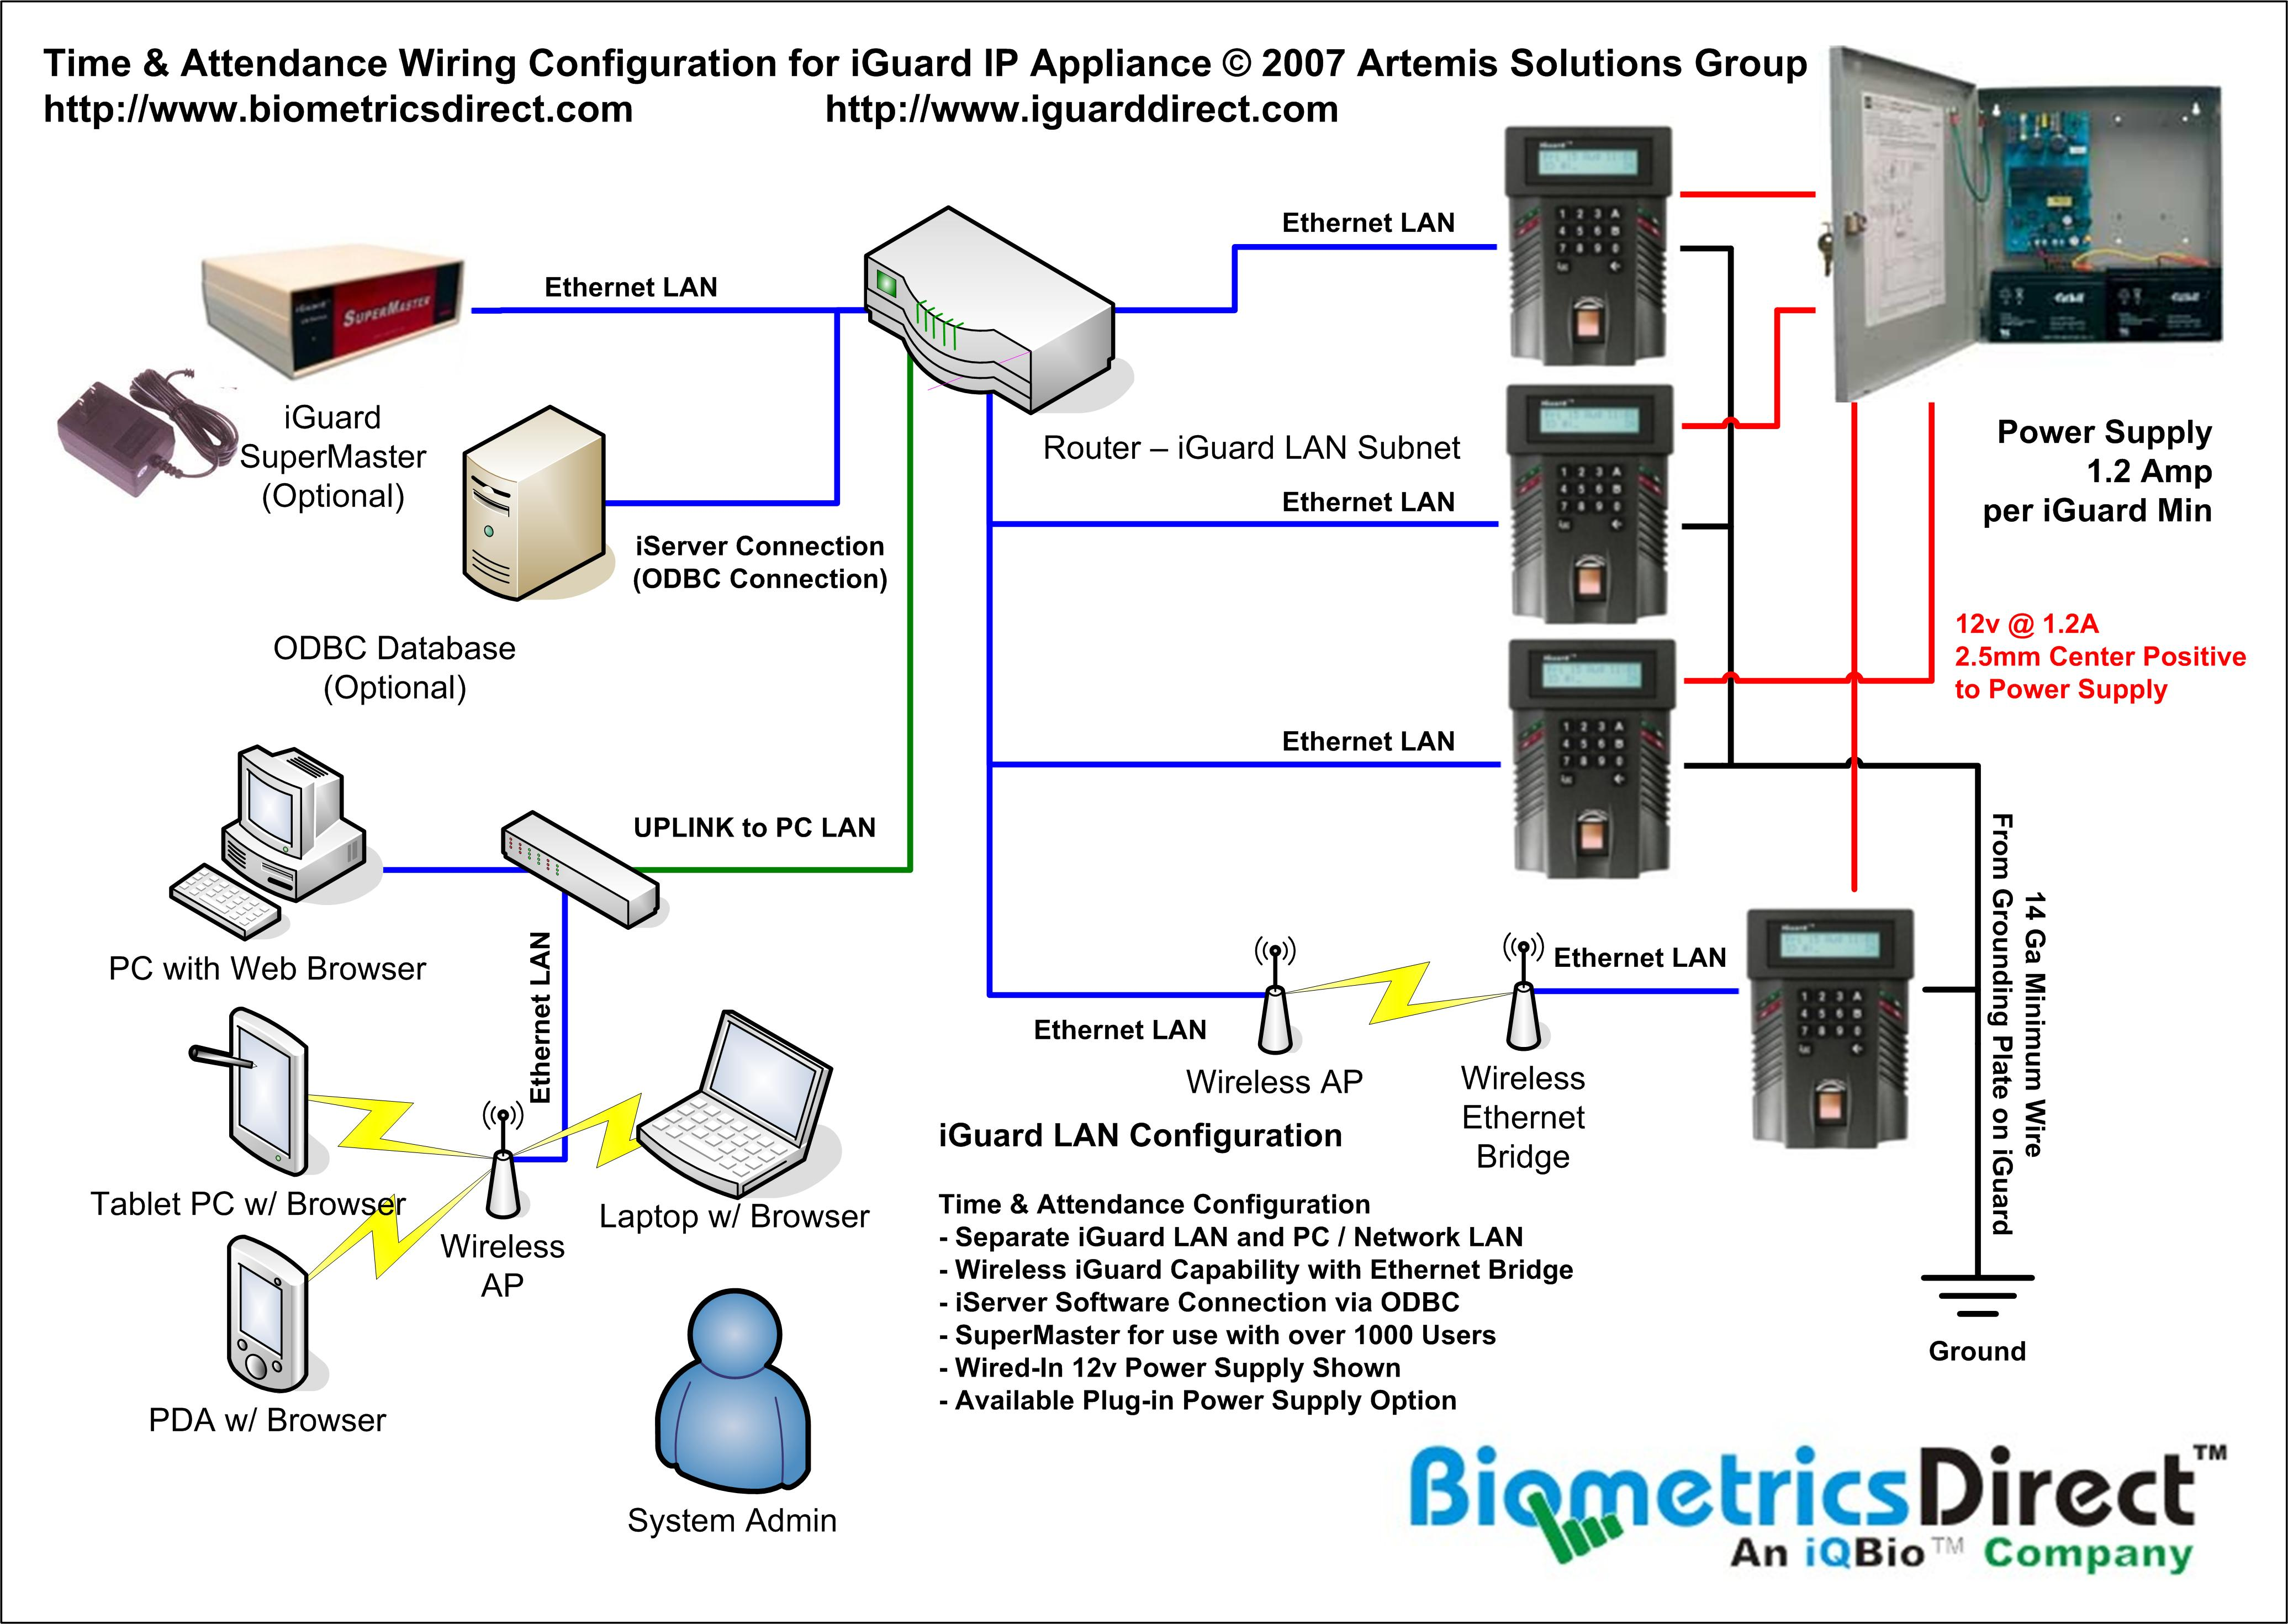 Latest Wiring Diagram Software Make House Diagrams And More Berkeley Cars Electrical Restoration Project Binatani Iguard Ip Appliance For Access Control Time Attendance